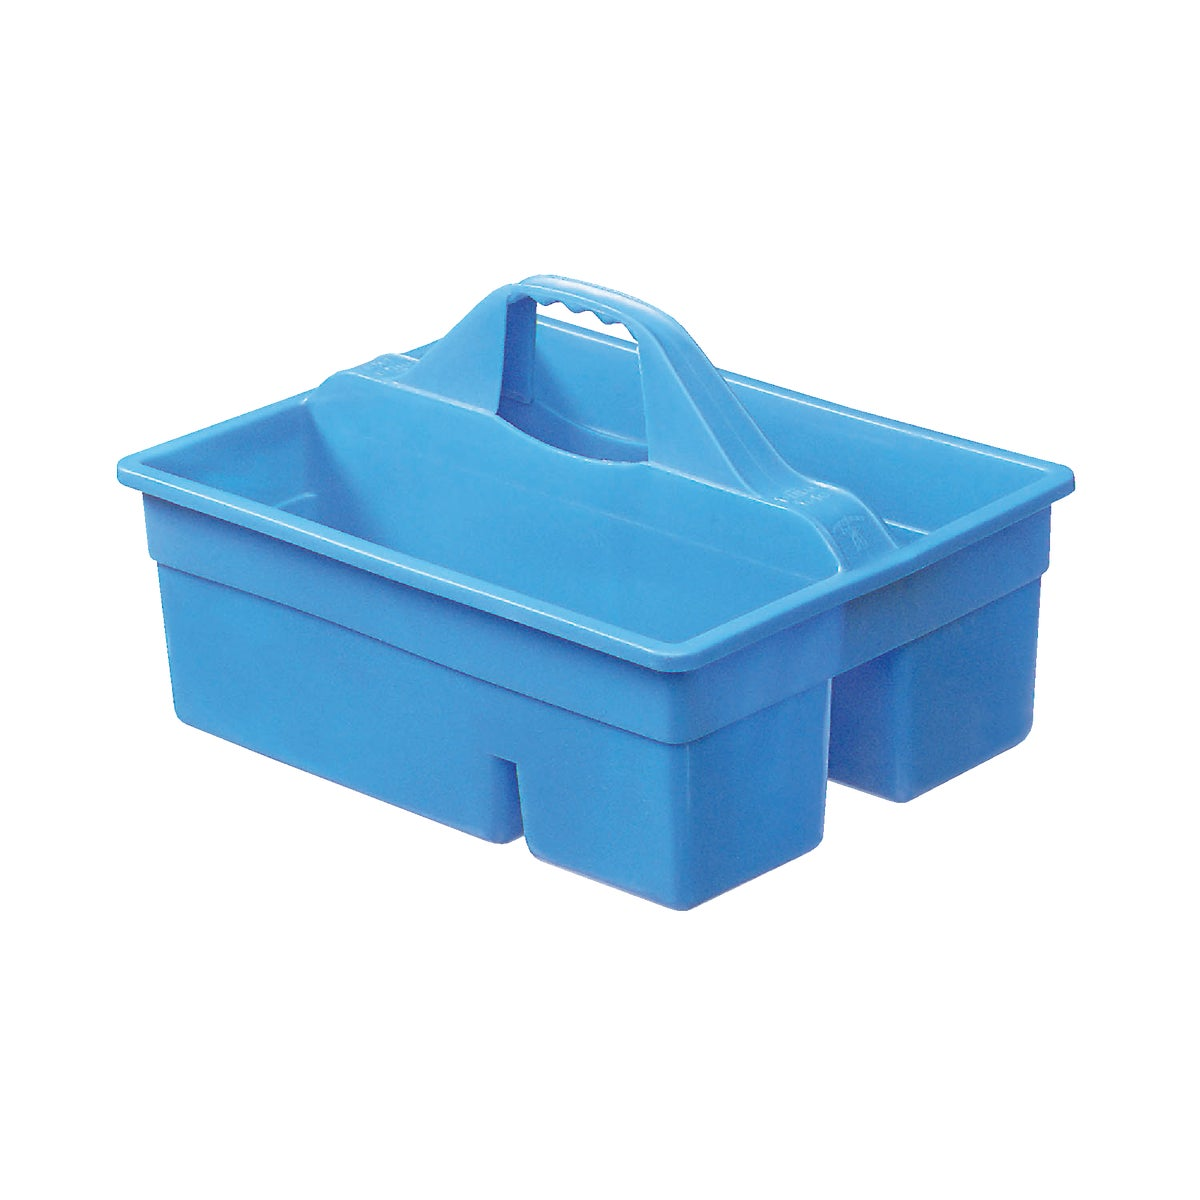 BLUE DURA-TOTE - DT6BLUE by Miller Manufacturing